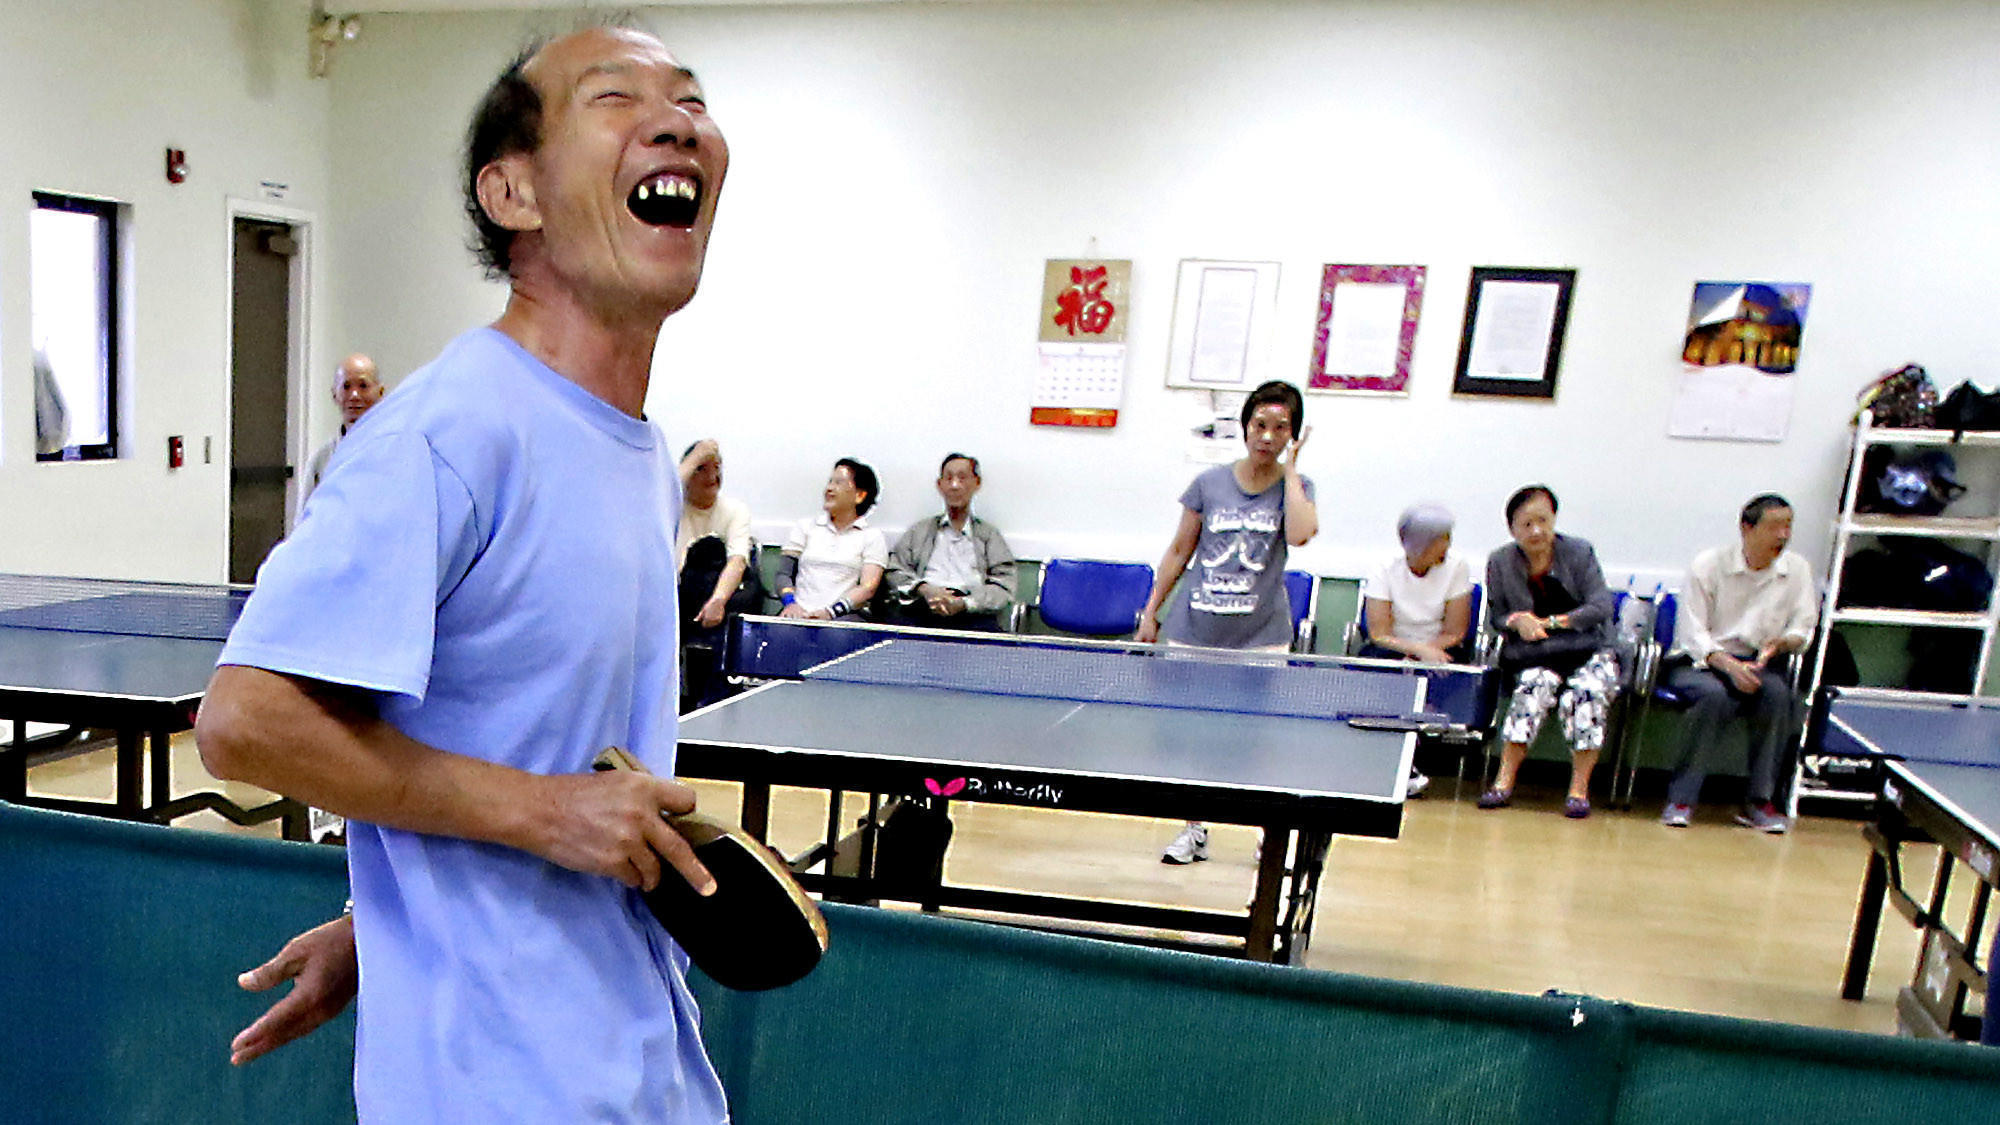 aging players keep on the ball with pingpong - la times